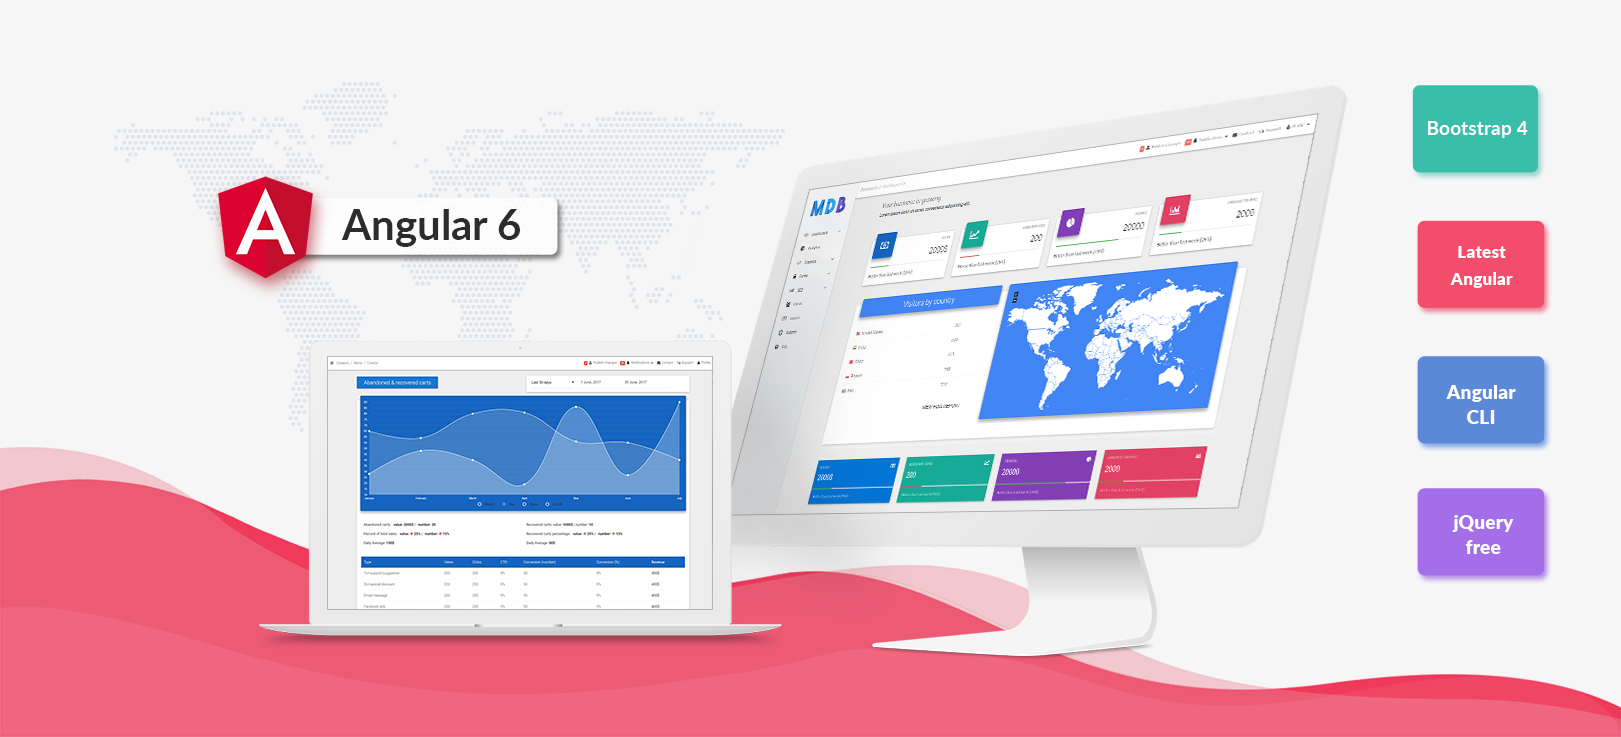 Angular Bootstrap with Material Design - Powerful and free UI KIT